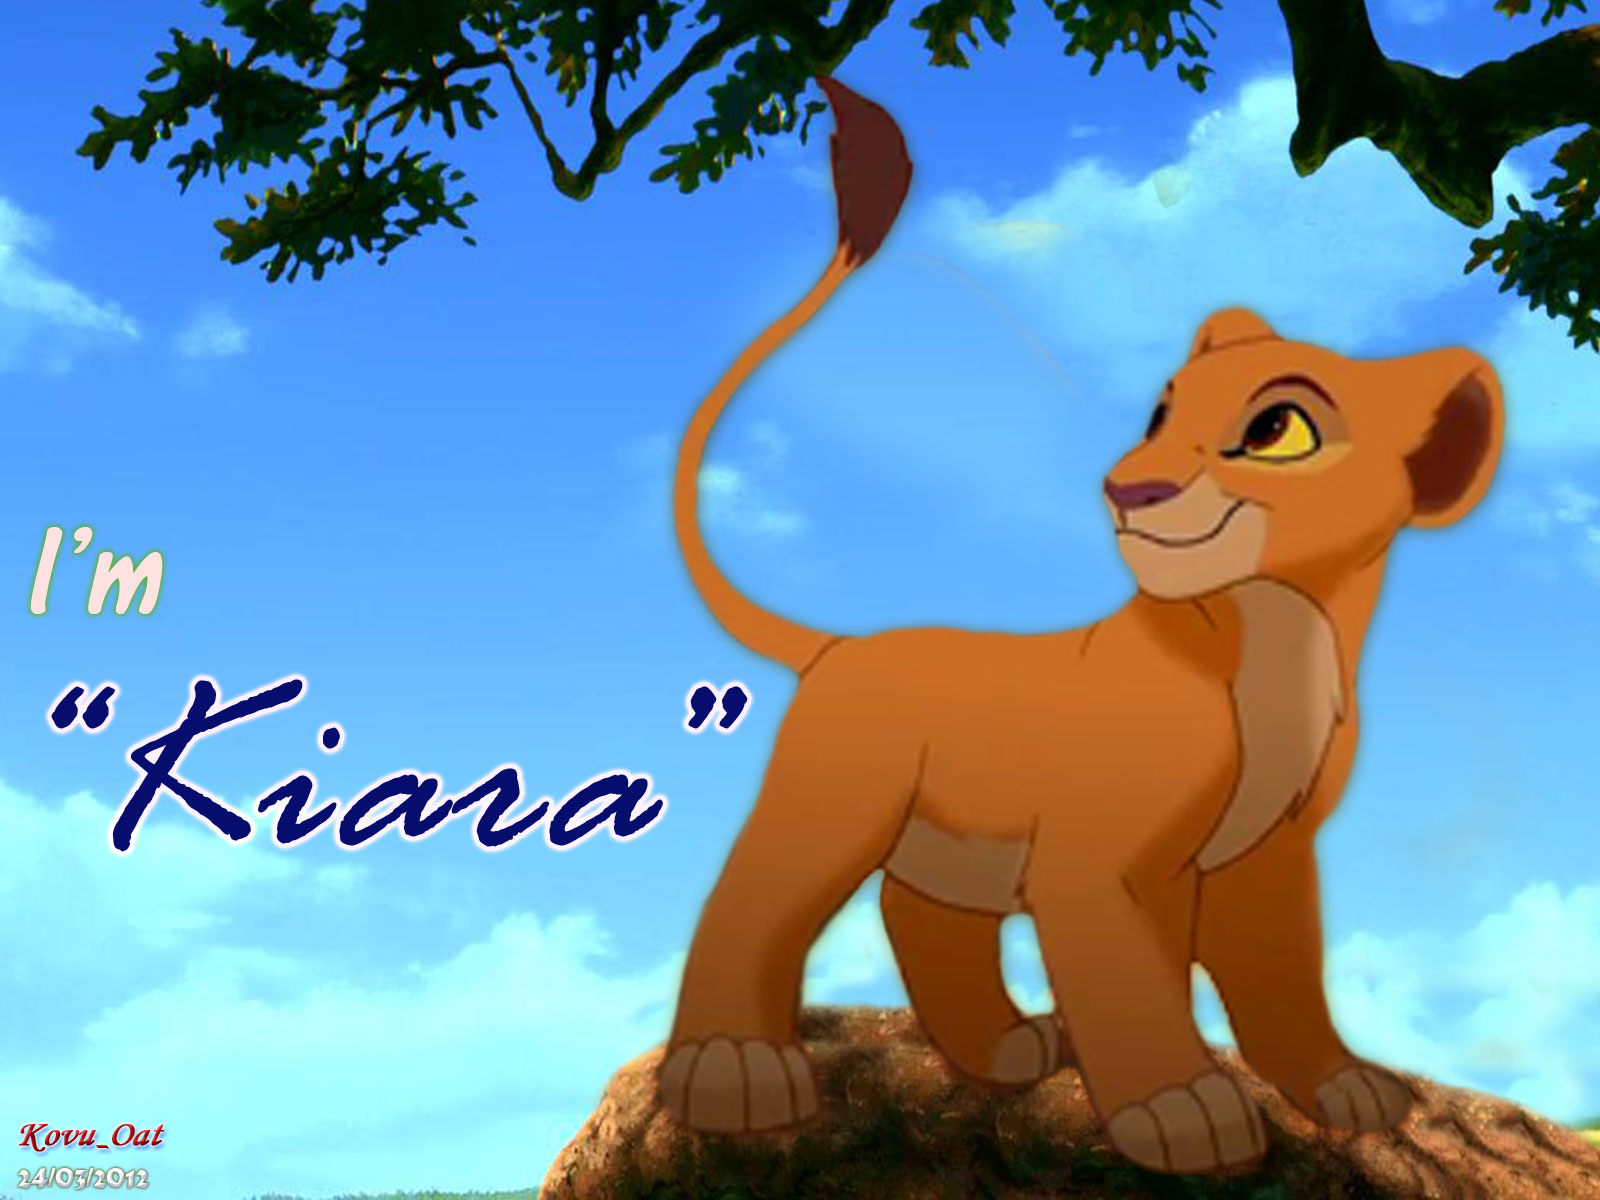 The Lion King Young Kiara Wallpaper HD   The Lion King Wallpaper 1600x1200